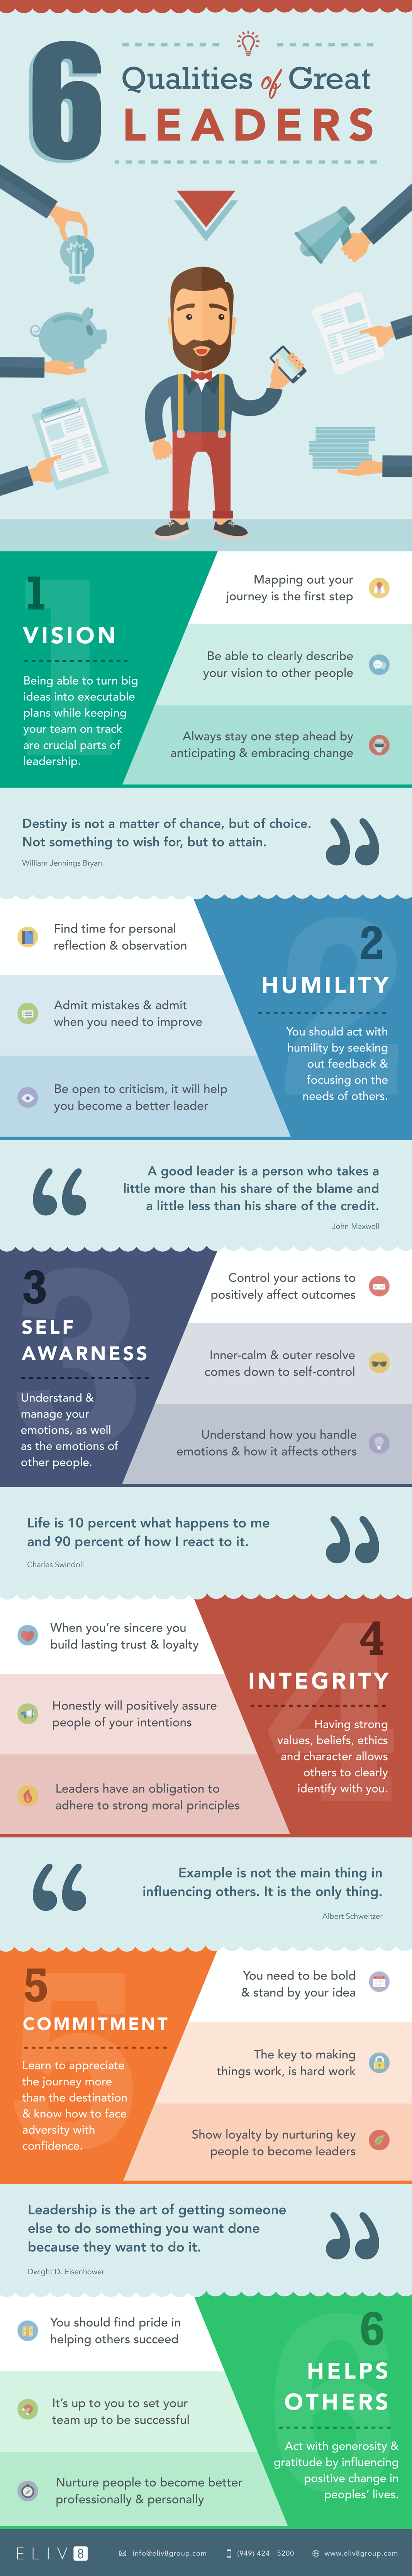 Top 6 Qualities Of Great Leaders Infographic